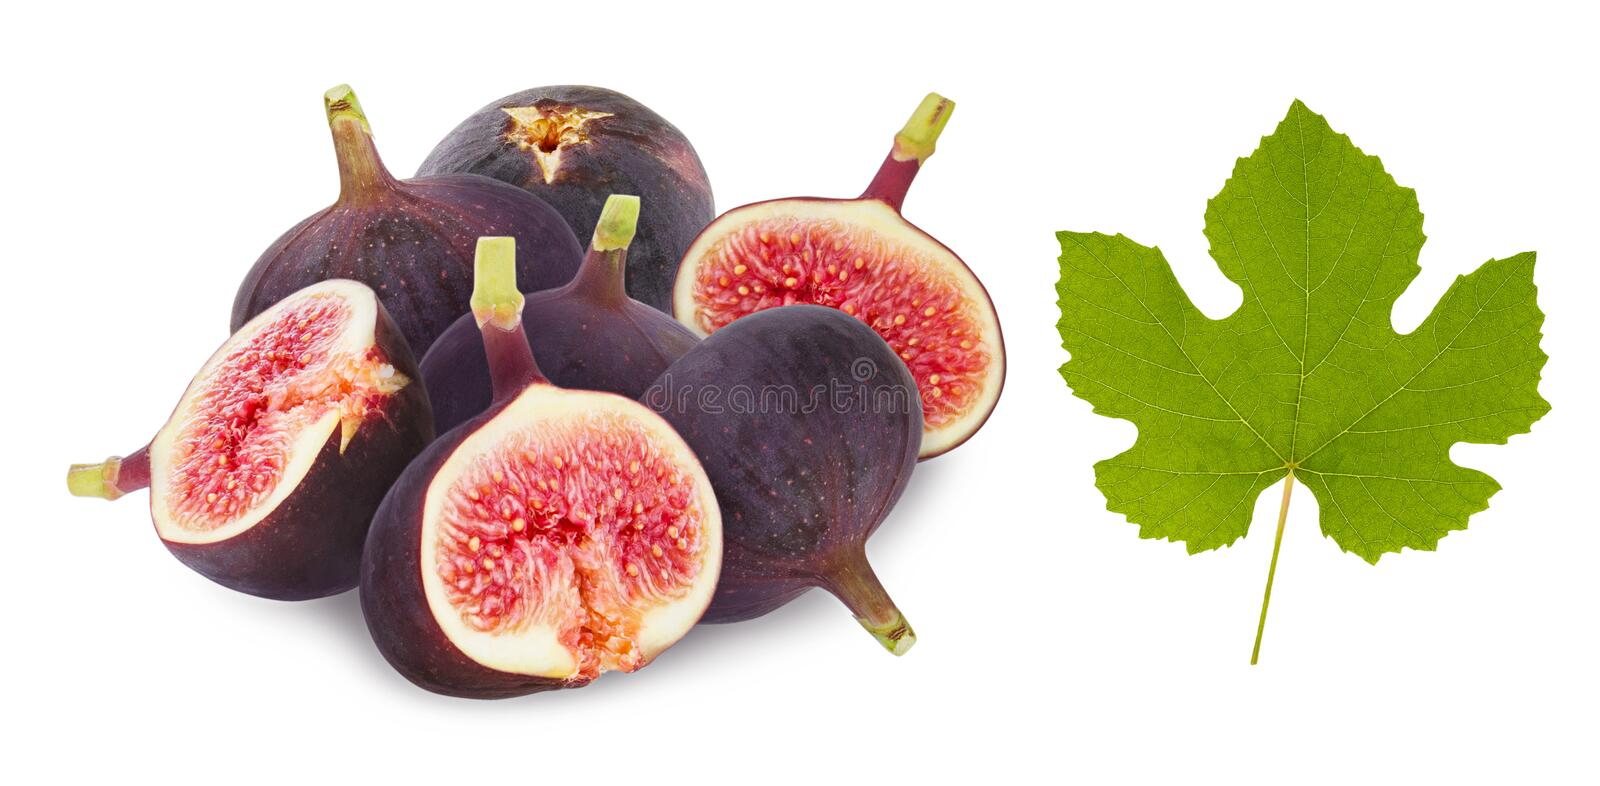 Fig fruit isolated. Ripe whole figs pile and half cut slice with green leaf isolated on white background royalty free stock photo